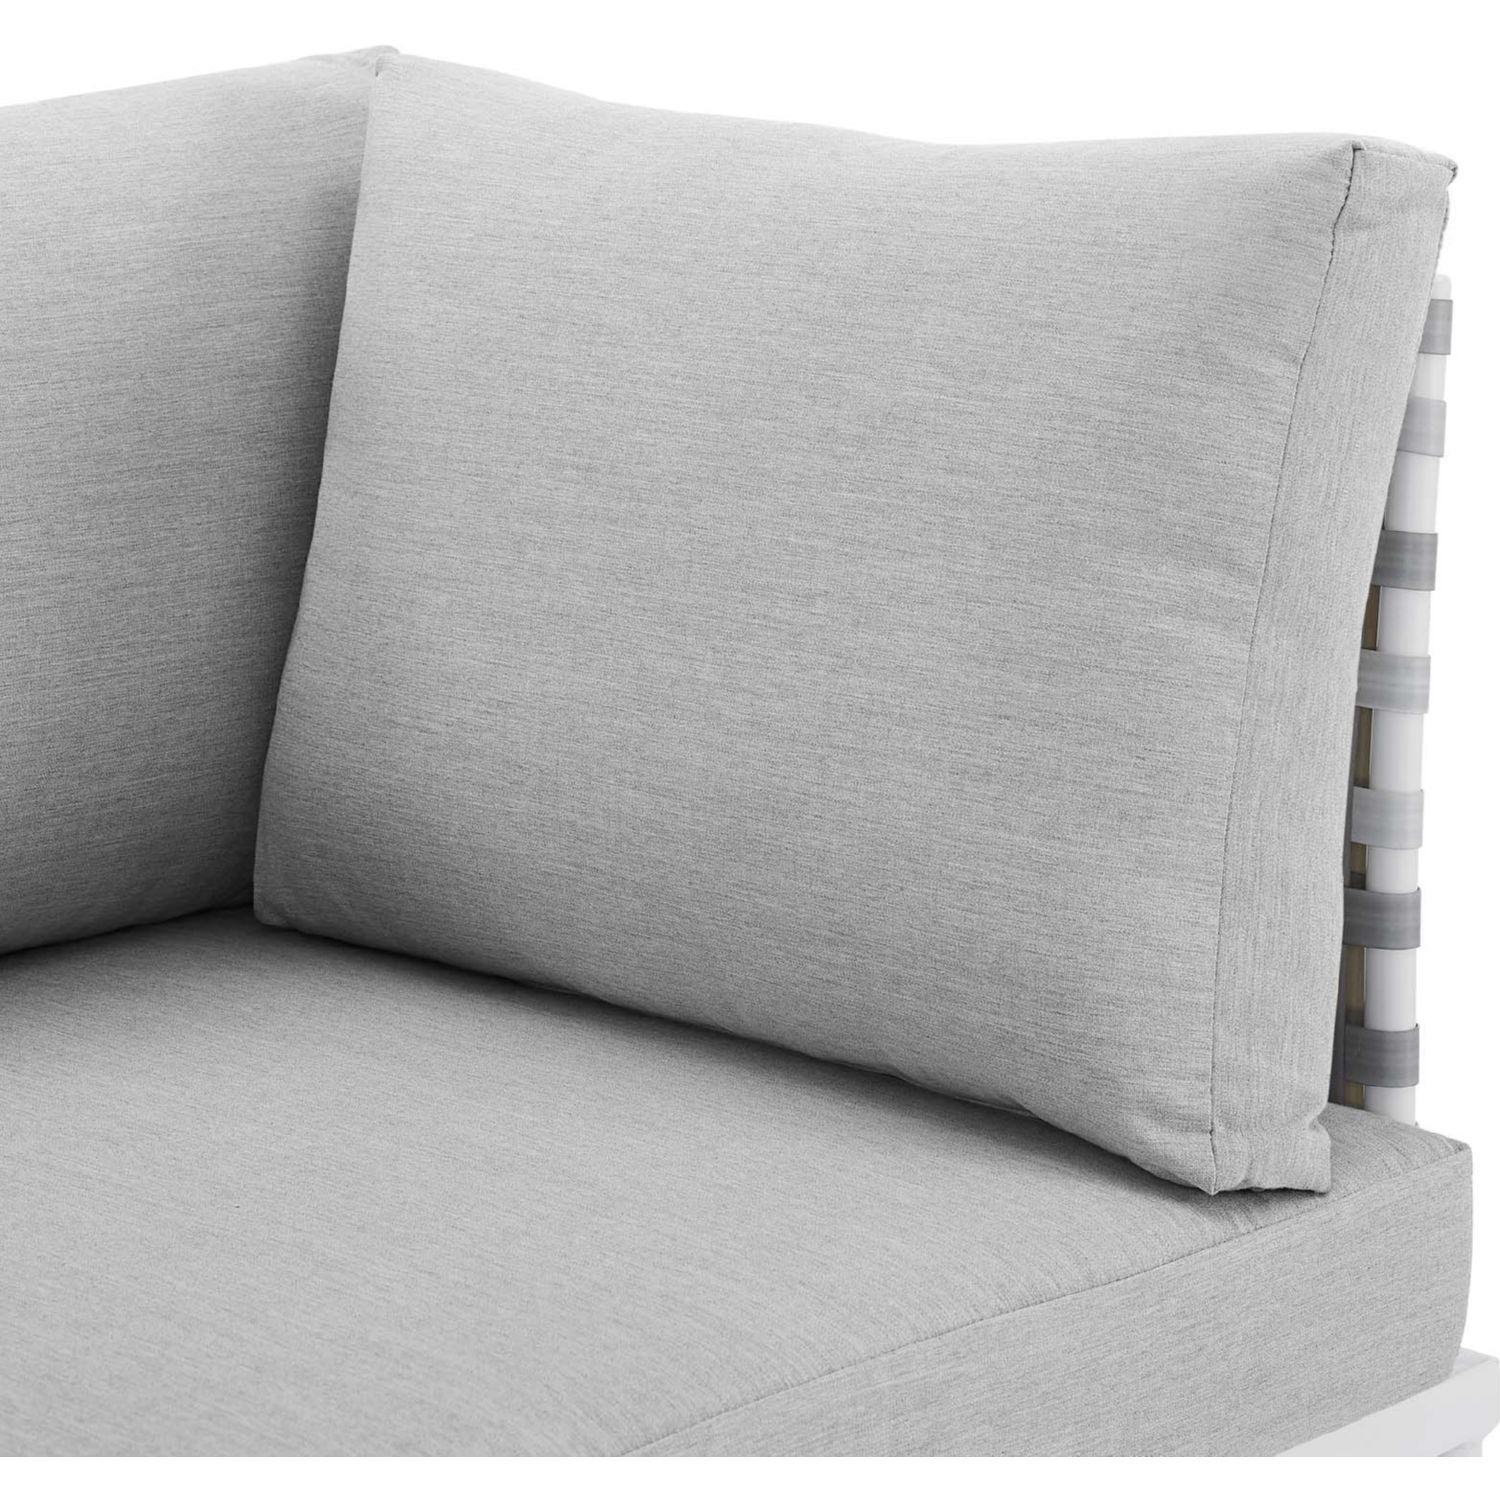 Outdoor Patio Sofa In Taupe Gray Cushion Fabric - image-4